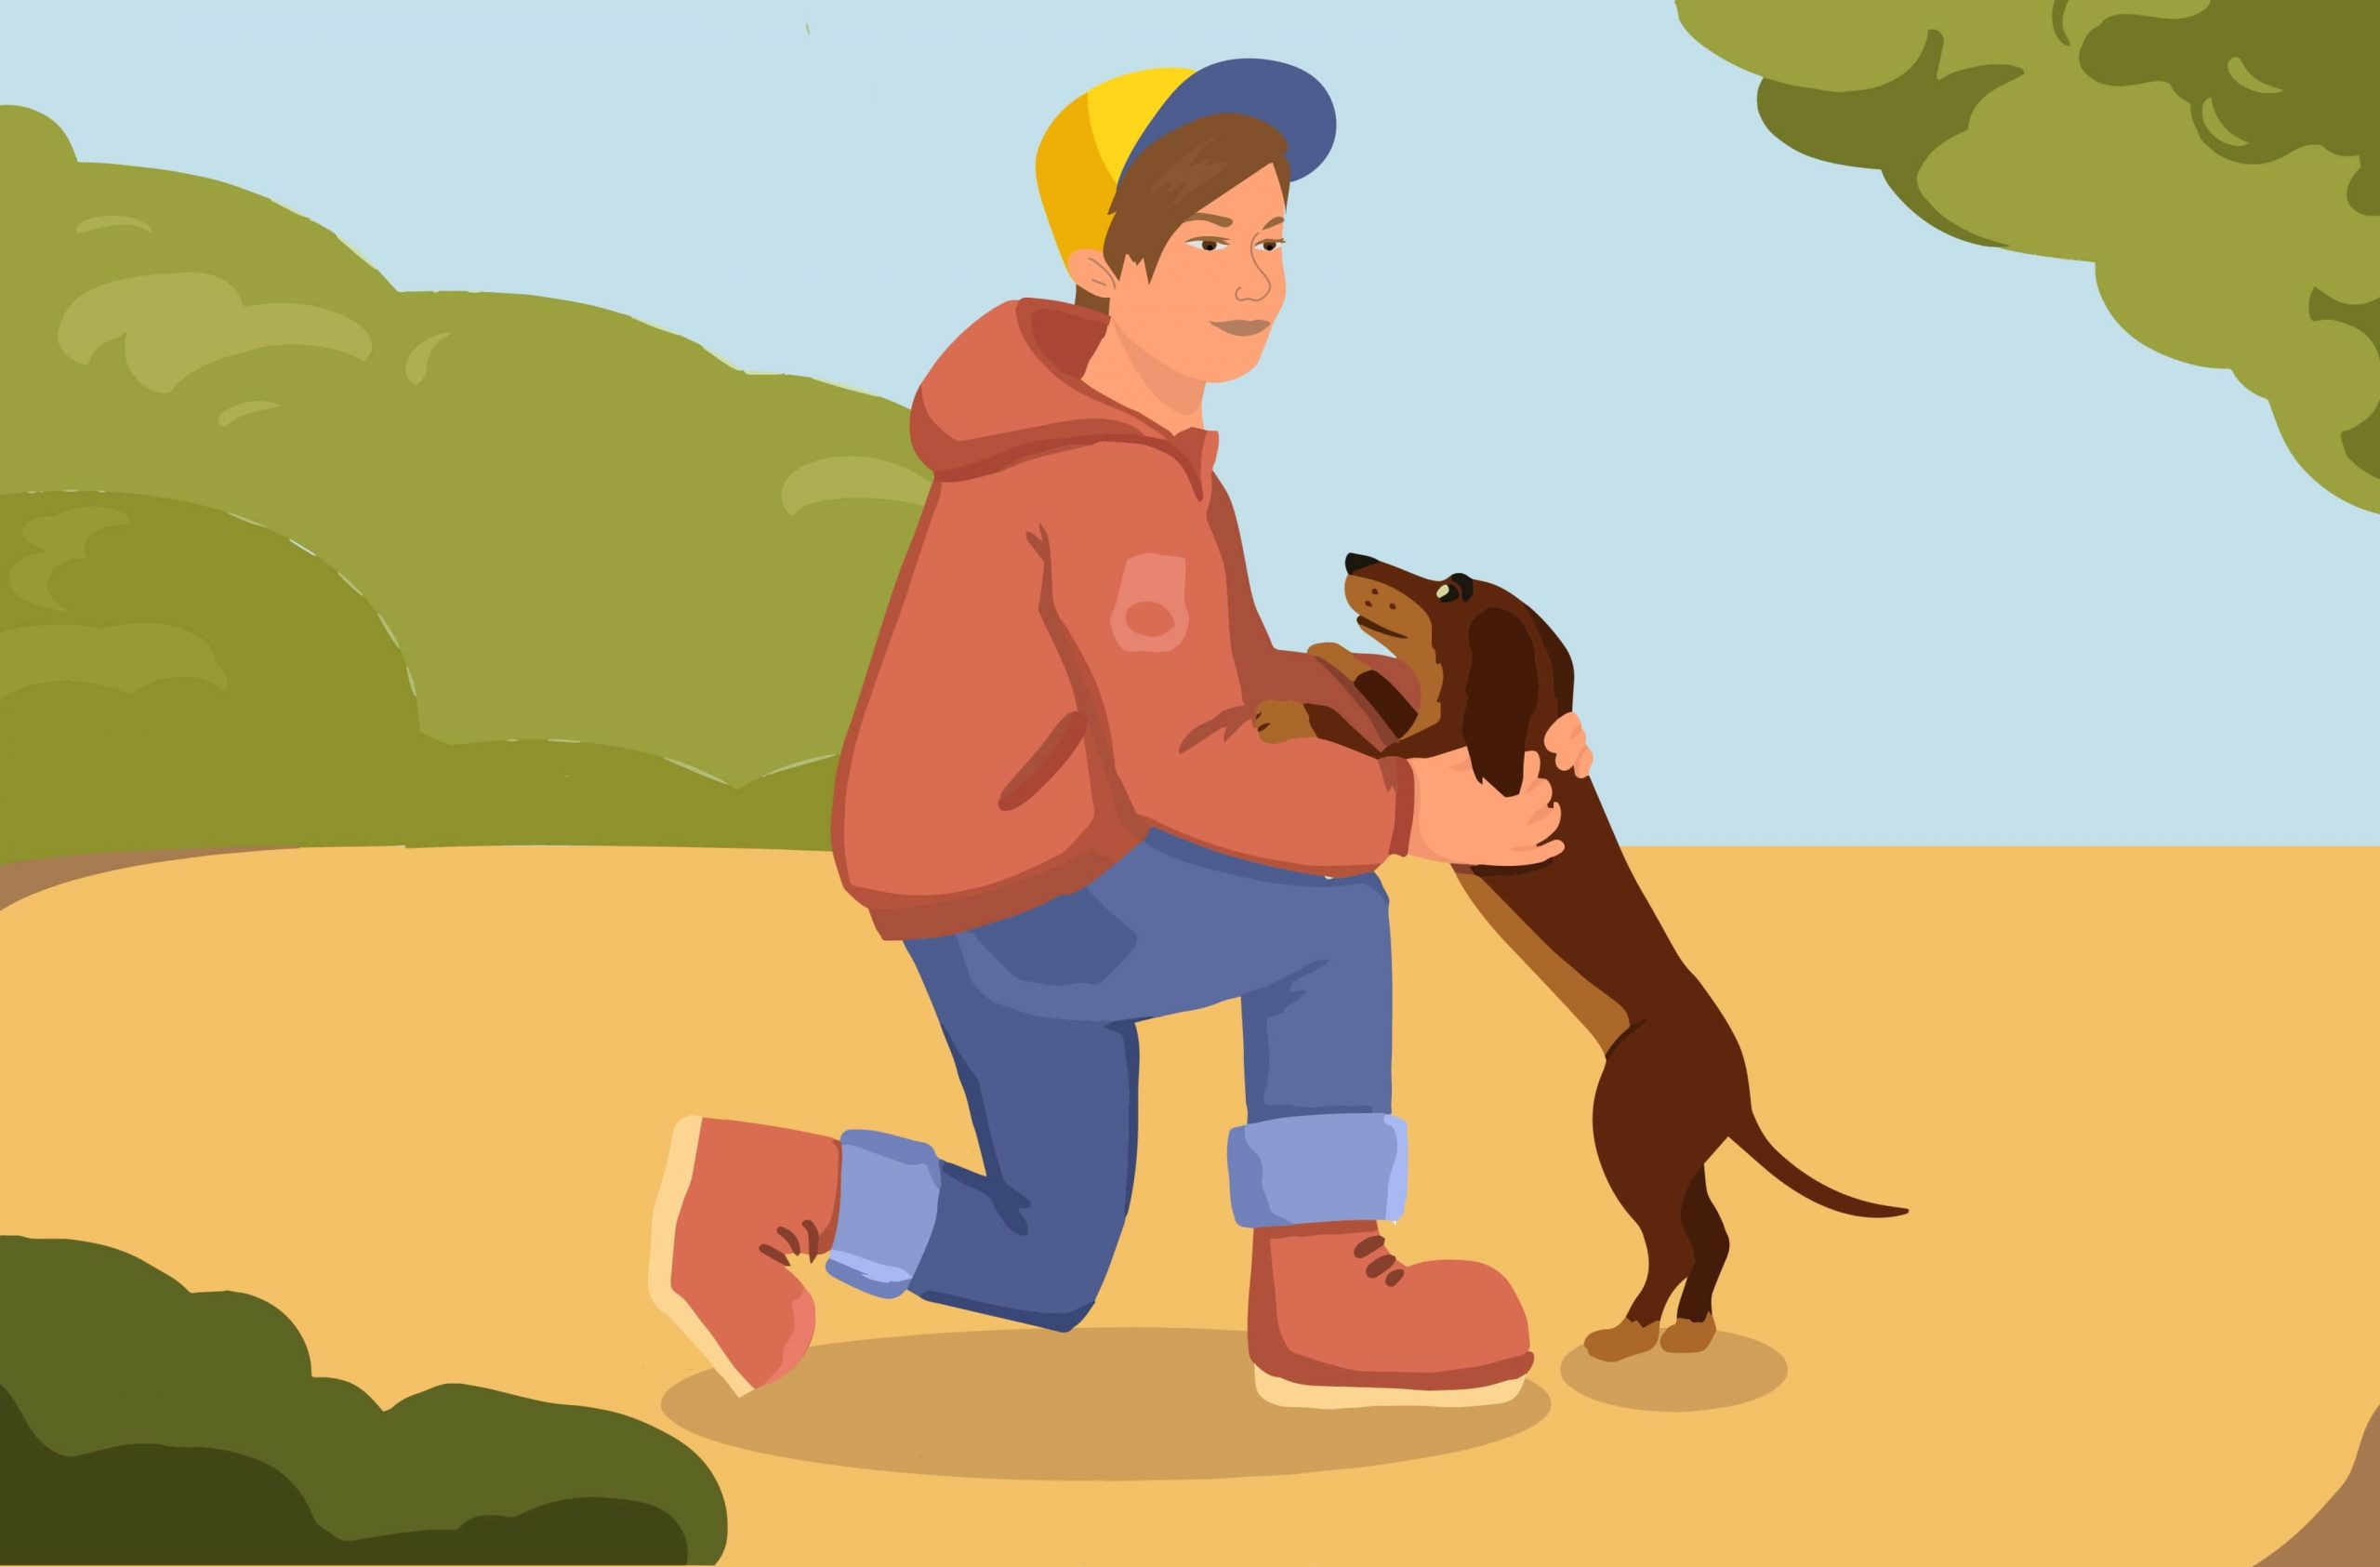 Owning A Dog Is Good For Children's Emotional Development